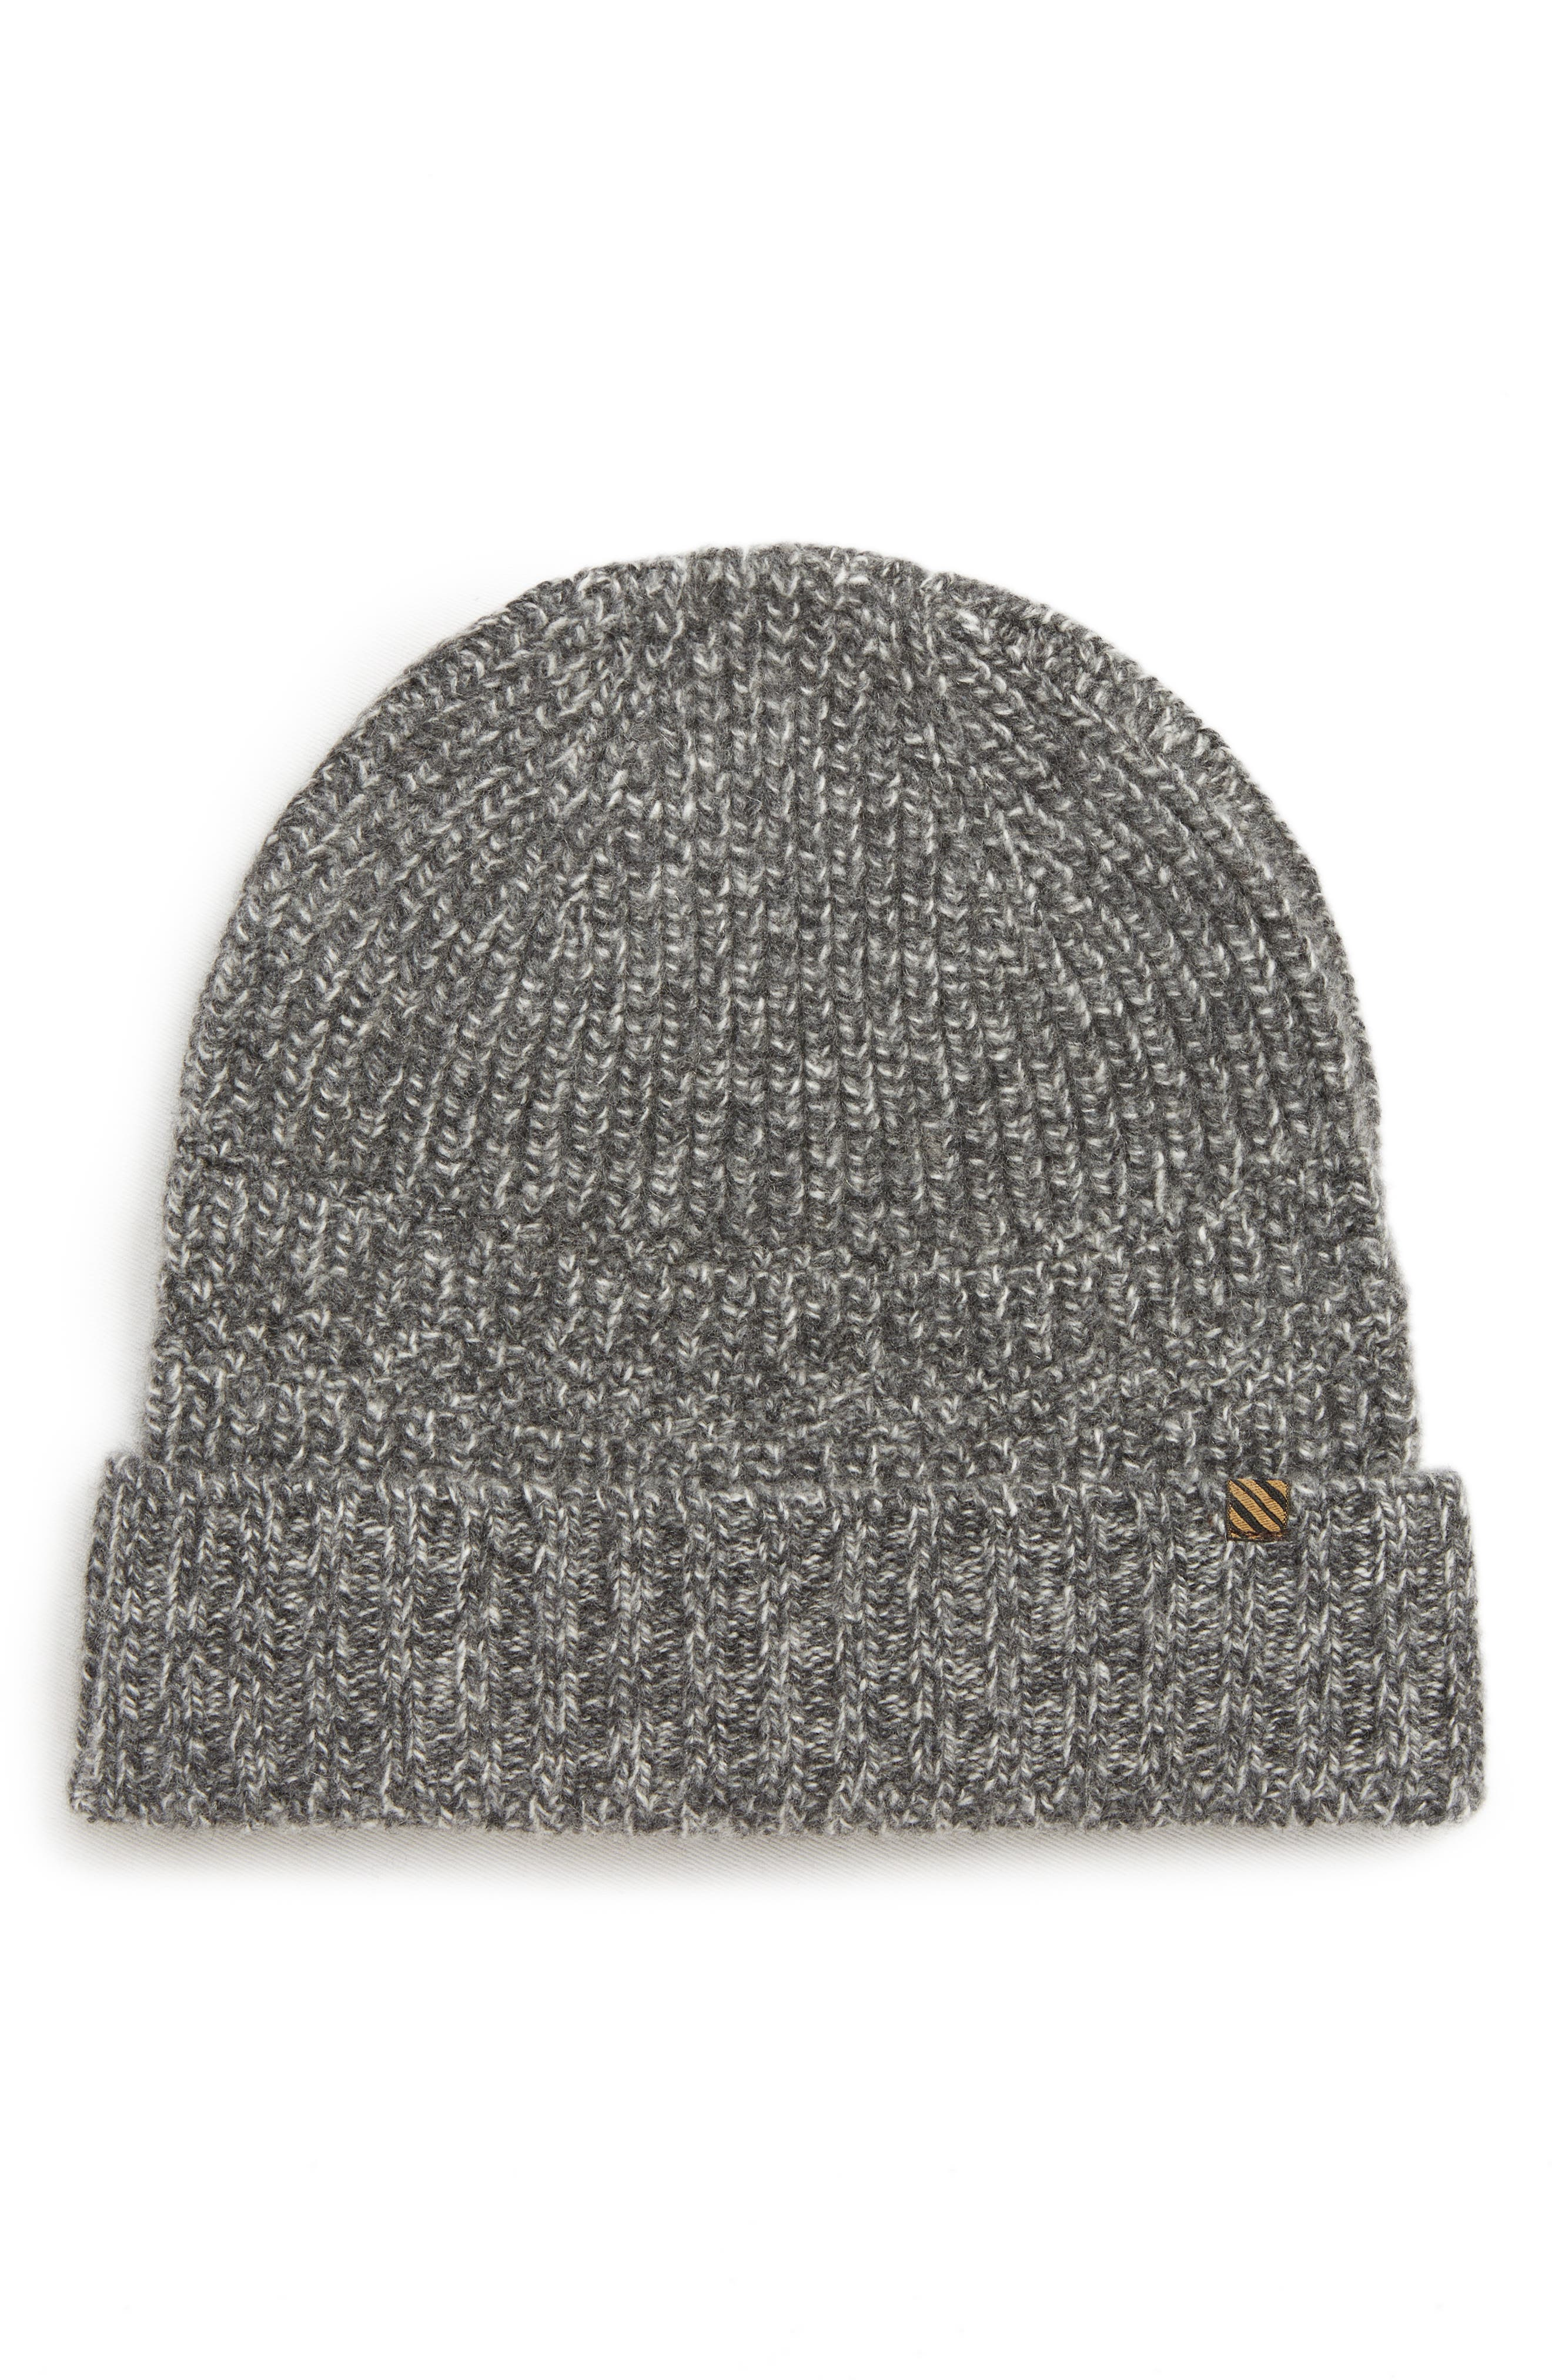 Ribbon Shaker Cashmere Beanie - Grey in Charcoal